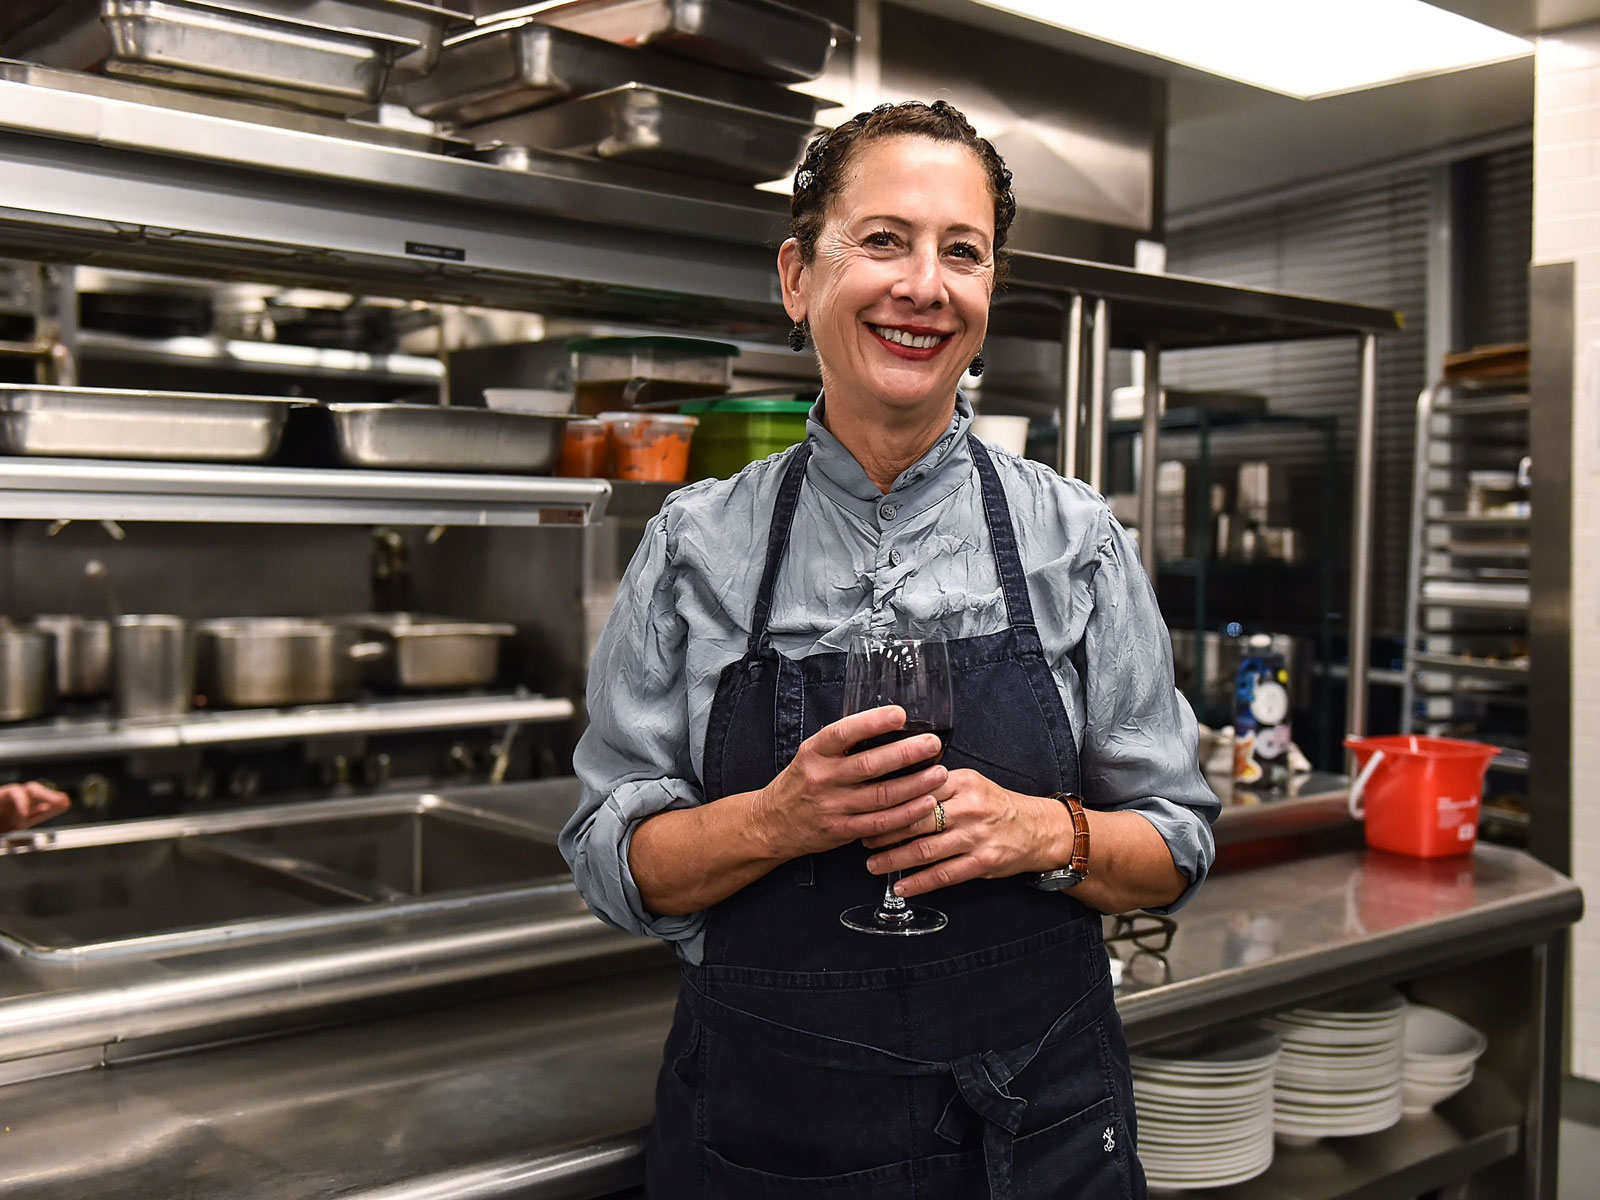 Nancy Silverton Opens New Pizza Restaurant in Los Angeles